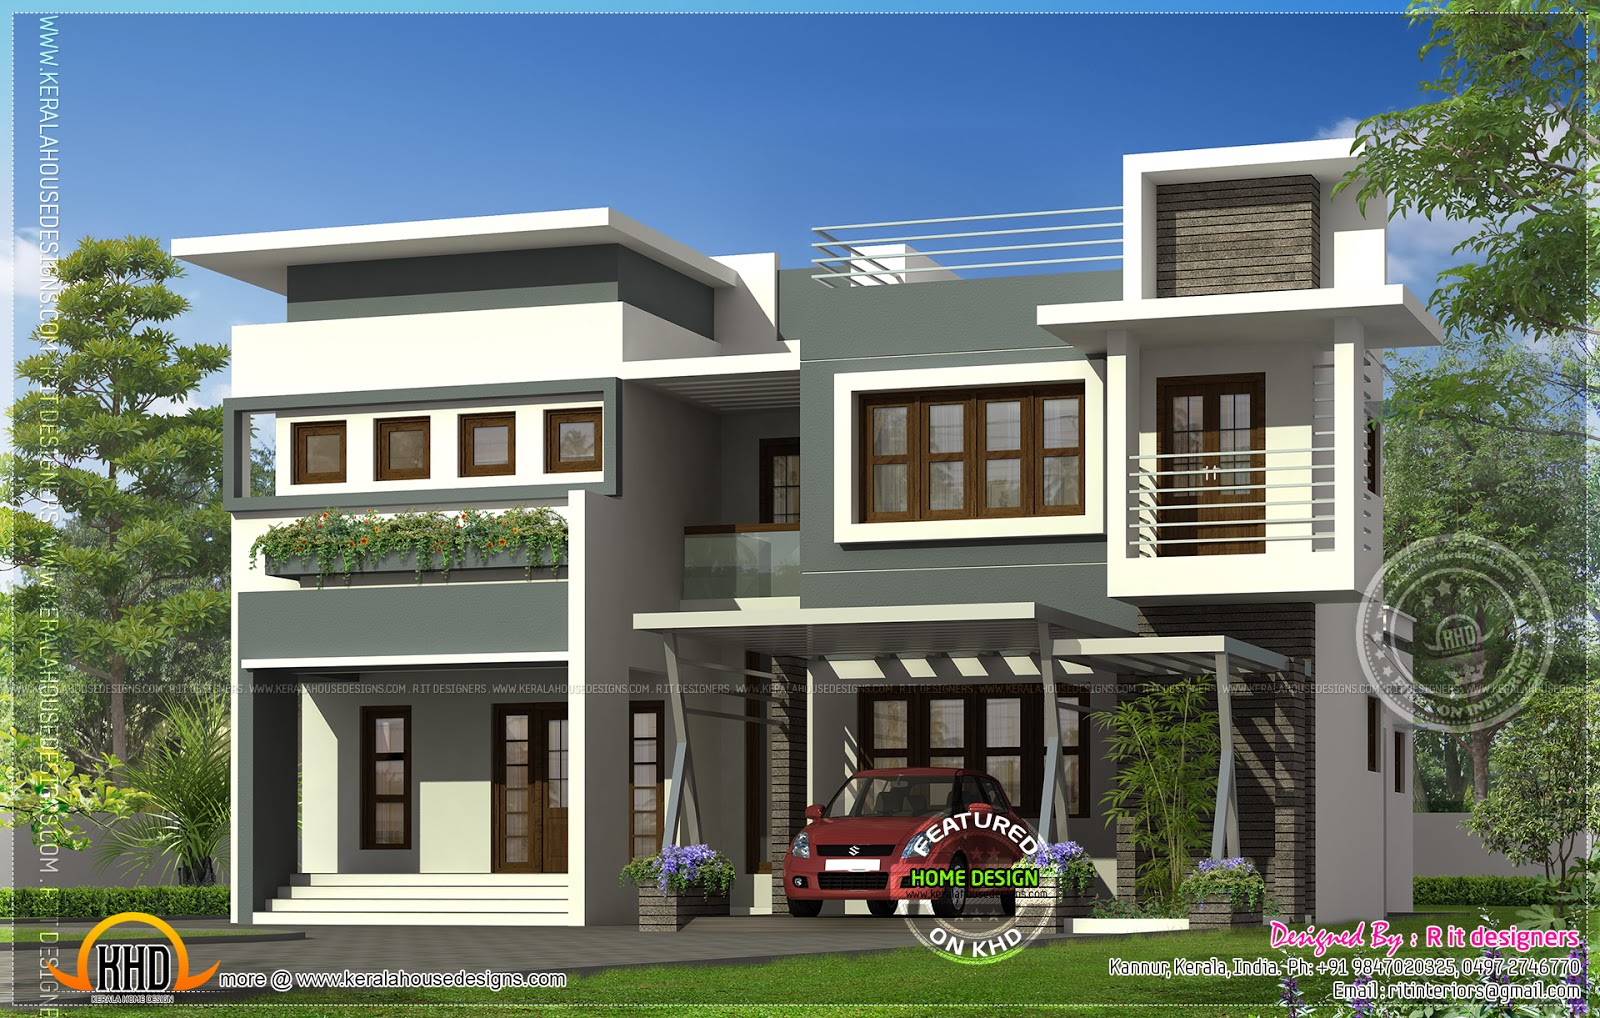 Modern contemporary residence design home kerala plans Contemporary house style